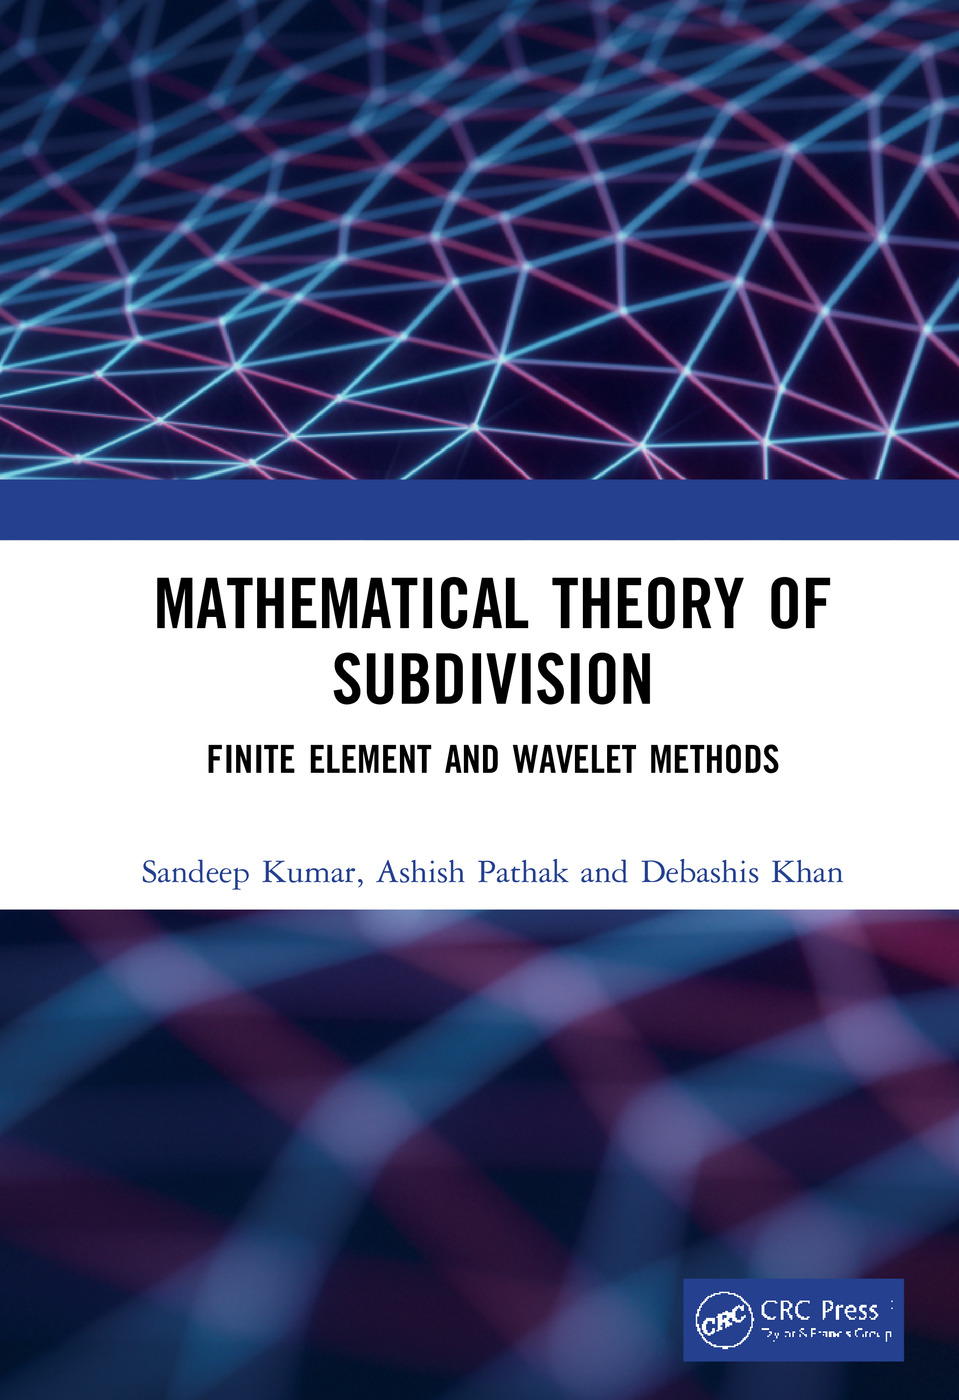 Mathematical Theory of Subdivision: Finite Element and Wavelet Methods book cover